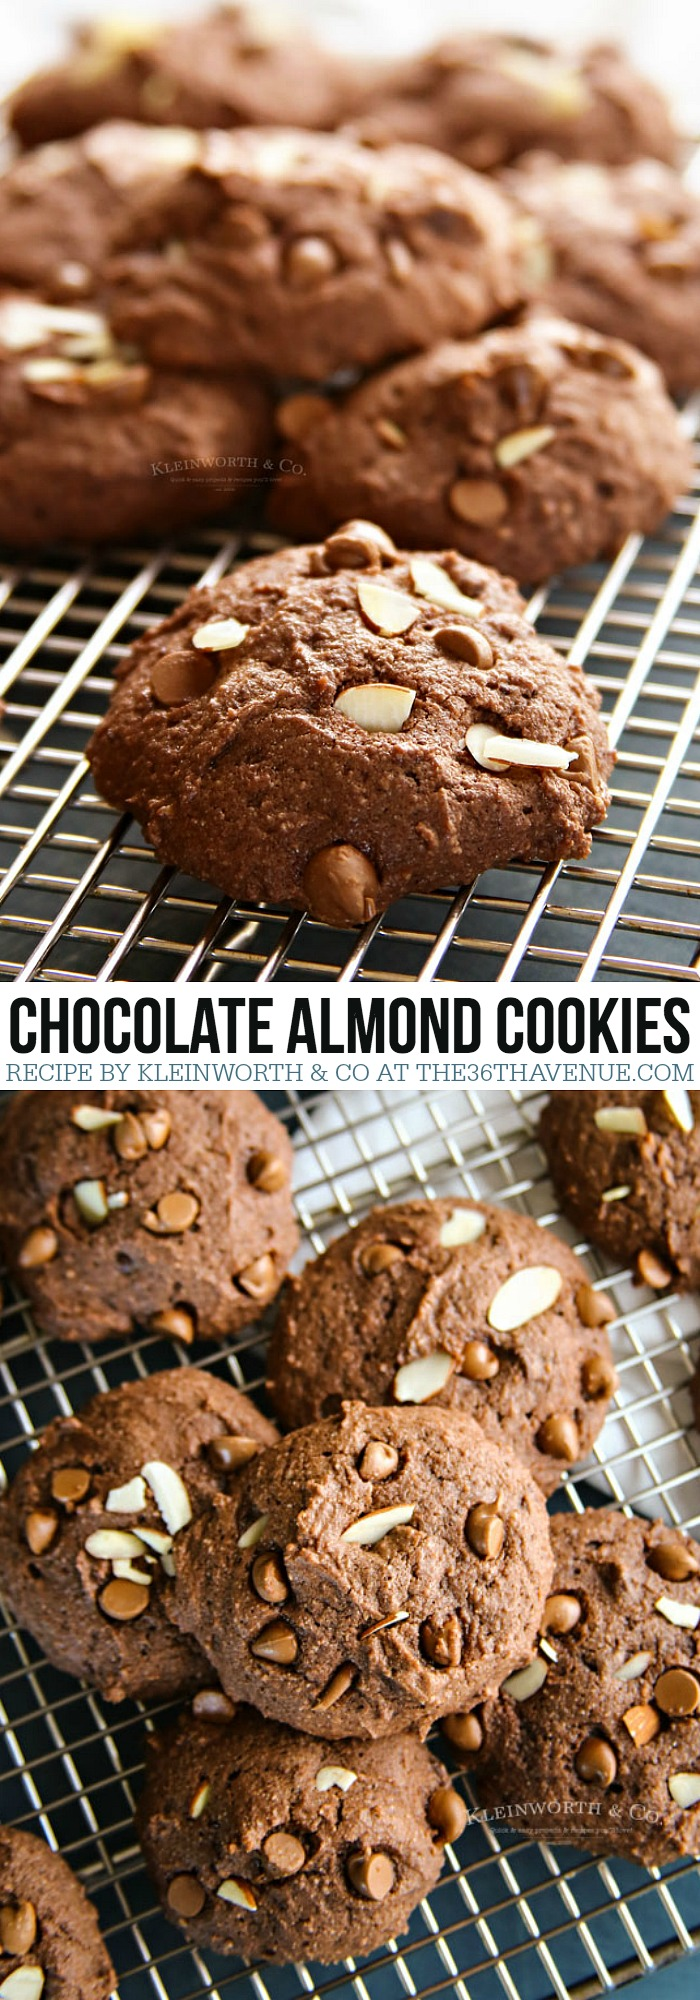 Chocolate Almond Cookies at the36thavenue.com